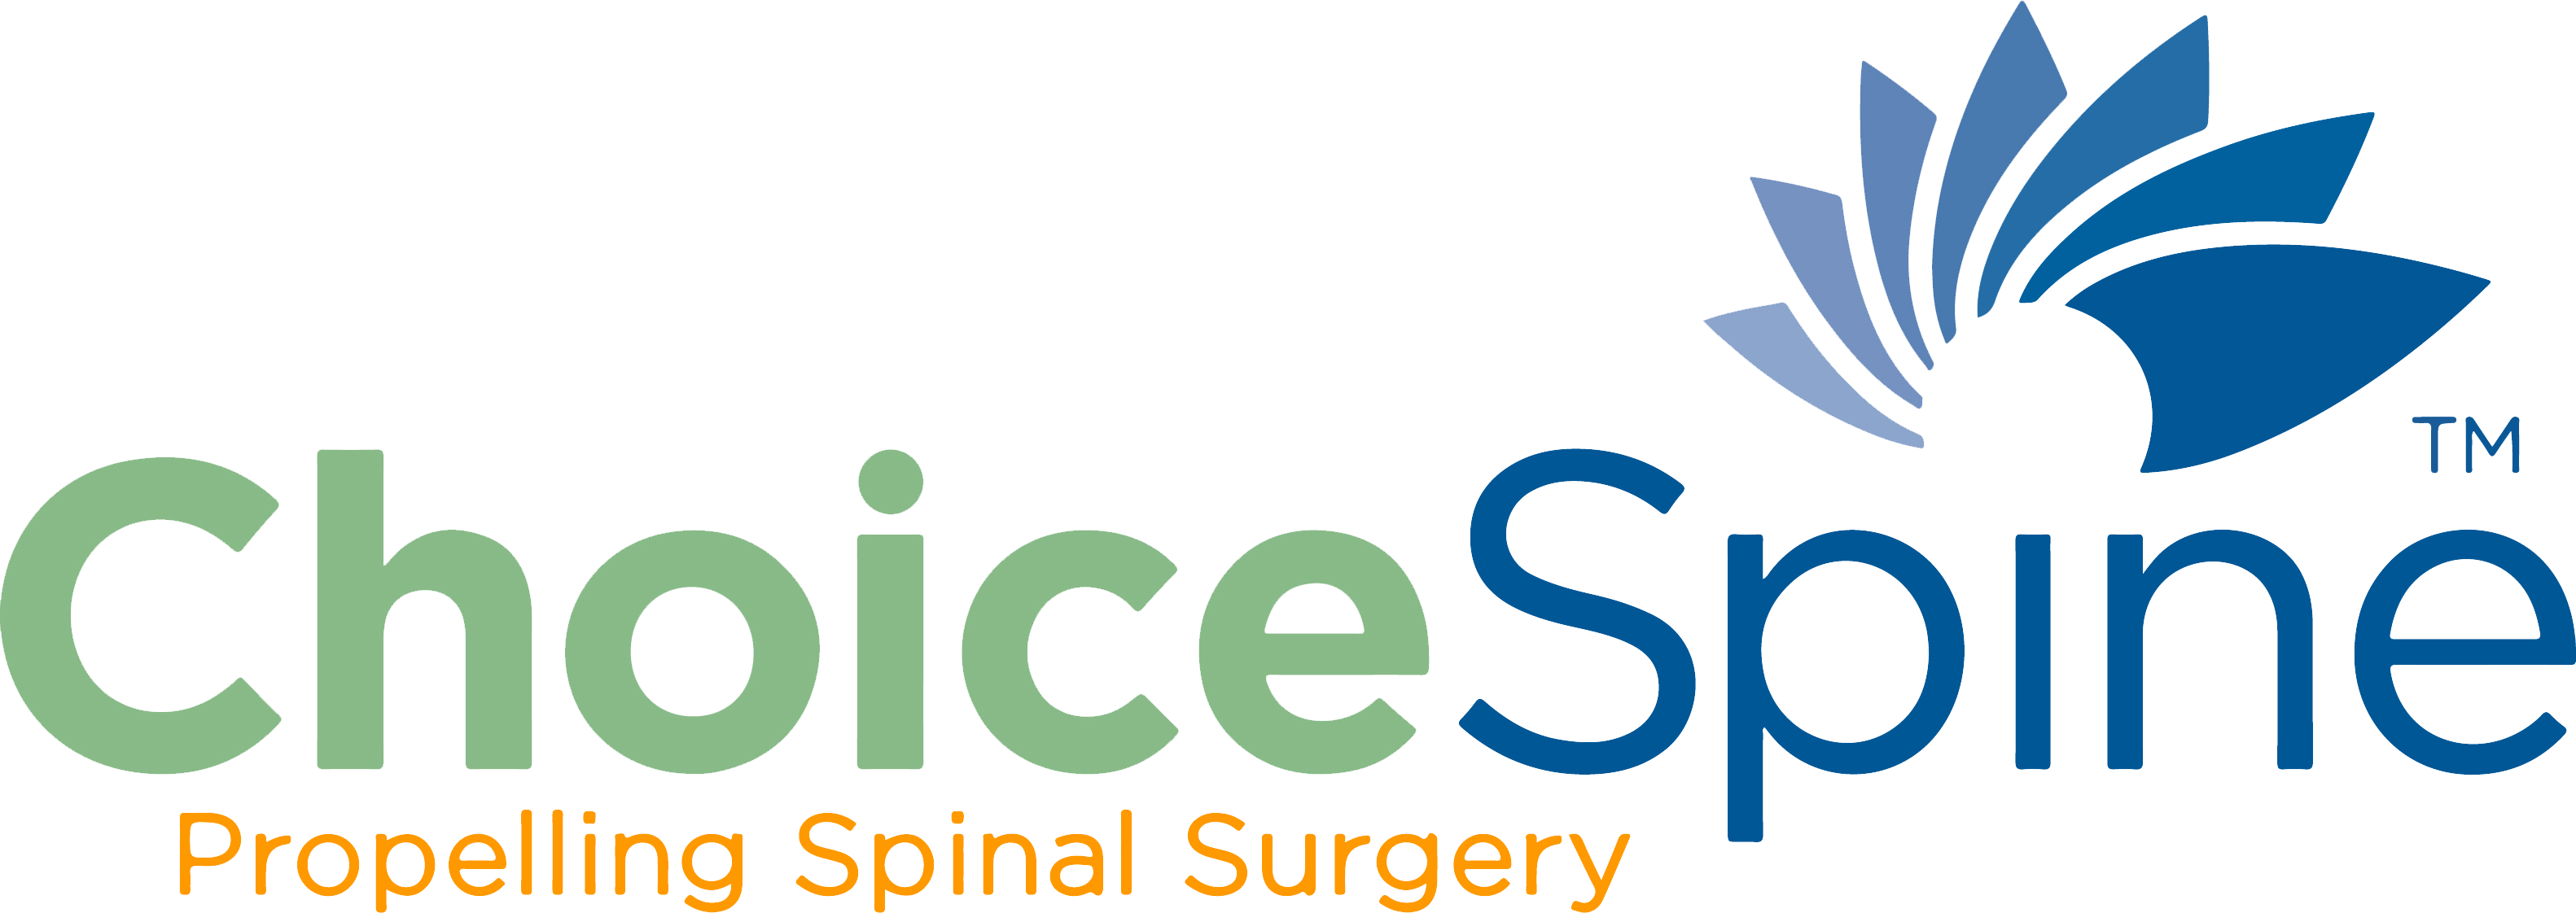 37 orthopedic and spine device companies to know